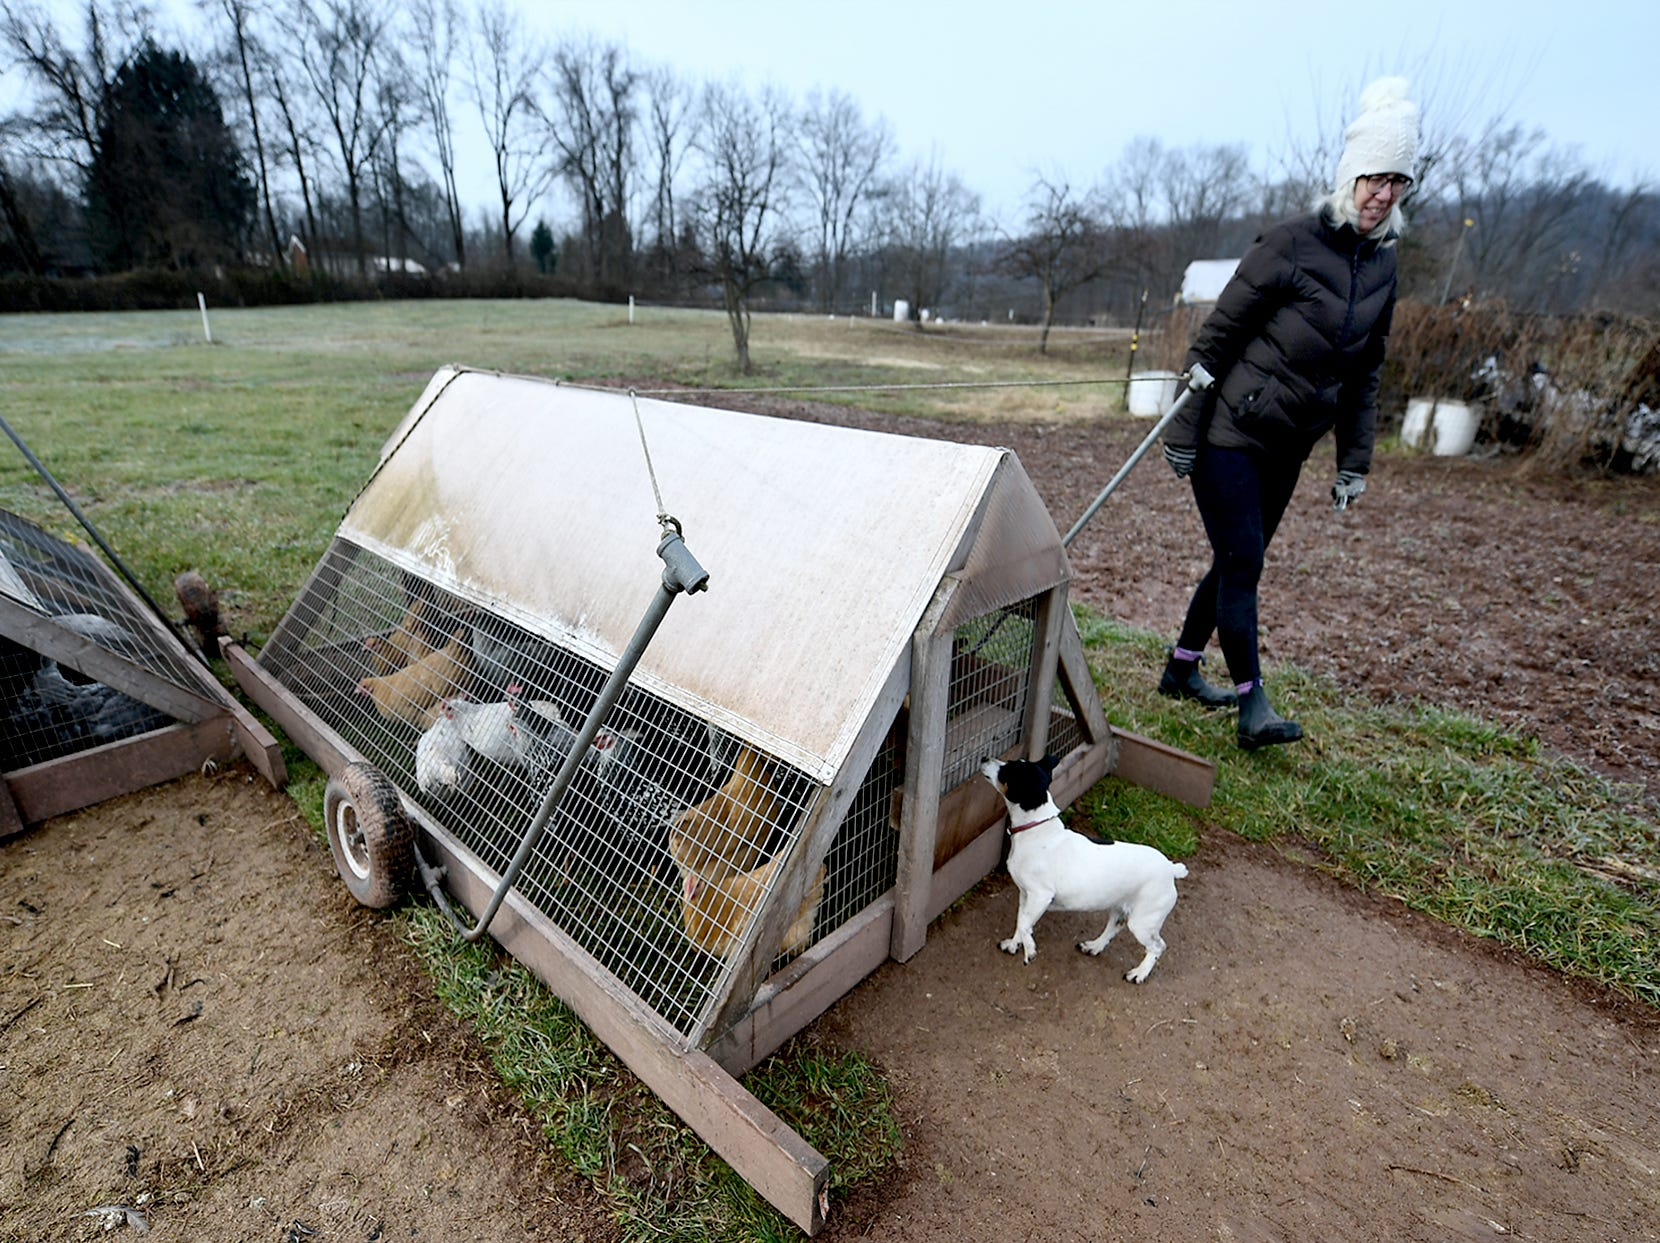 Dru Peters checks on portable chicken pens at his family's sustainable Sunnyside Farm in Newberry Township Friday, Jan. 4, 2019. Bill Kalina photo